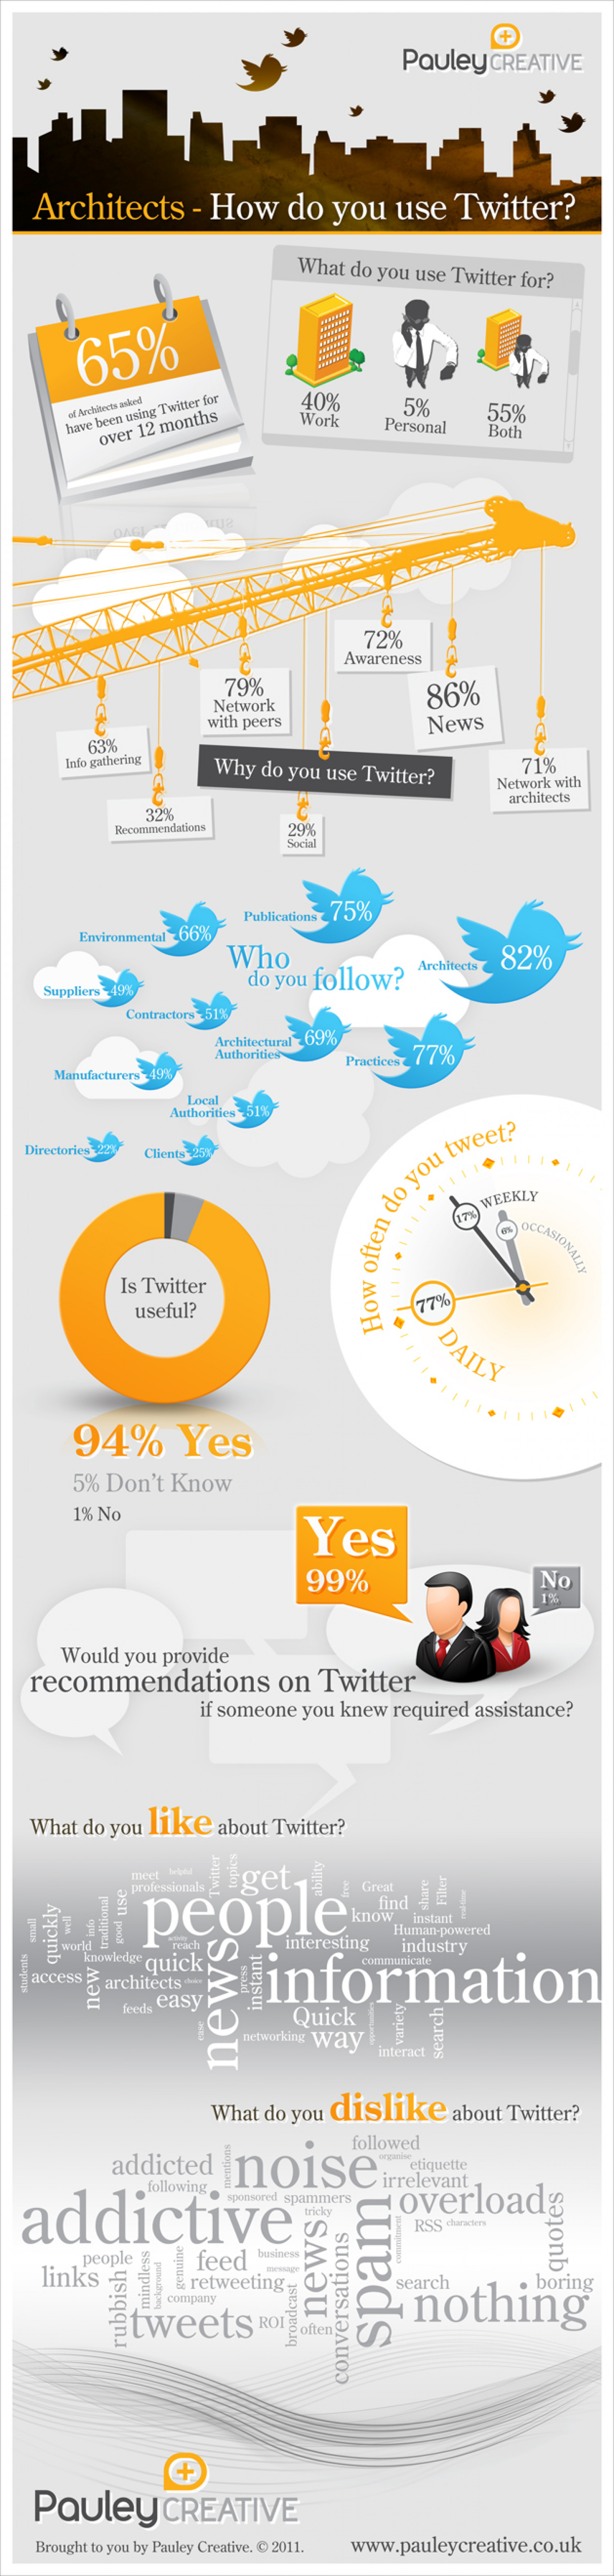 Architects: How do you use Twitter? Infographic